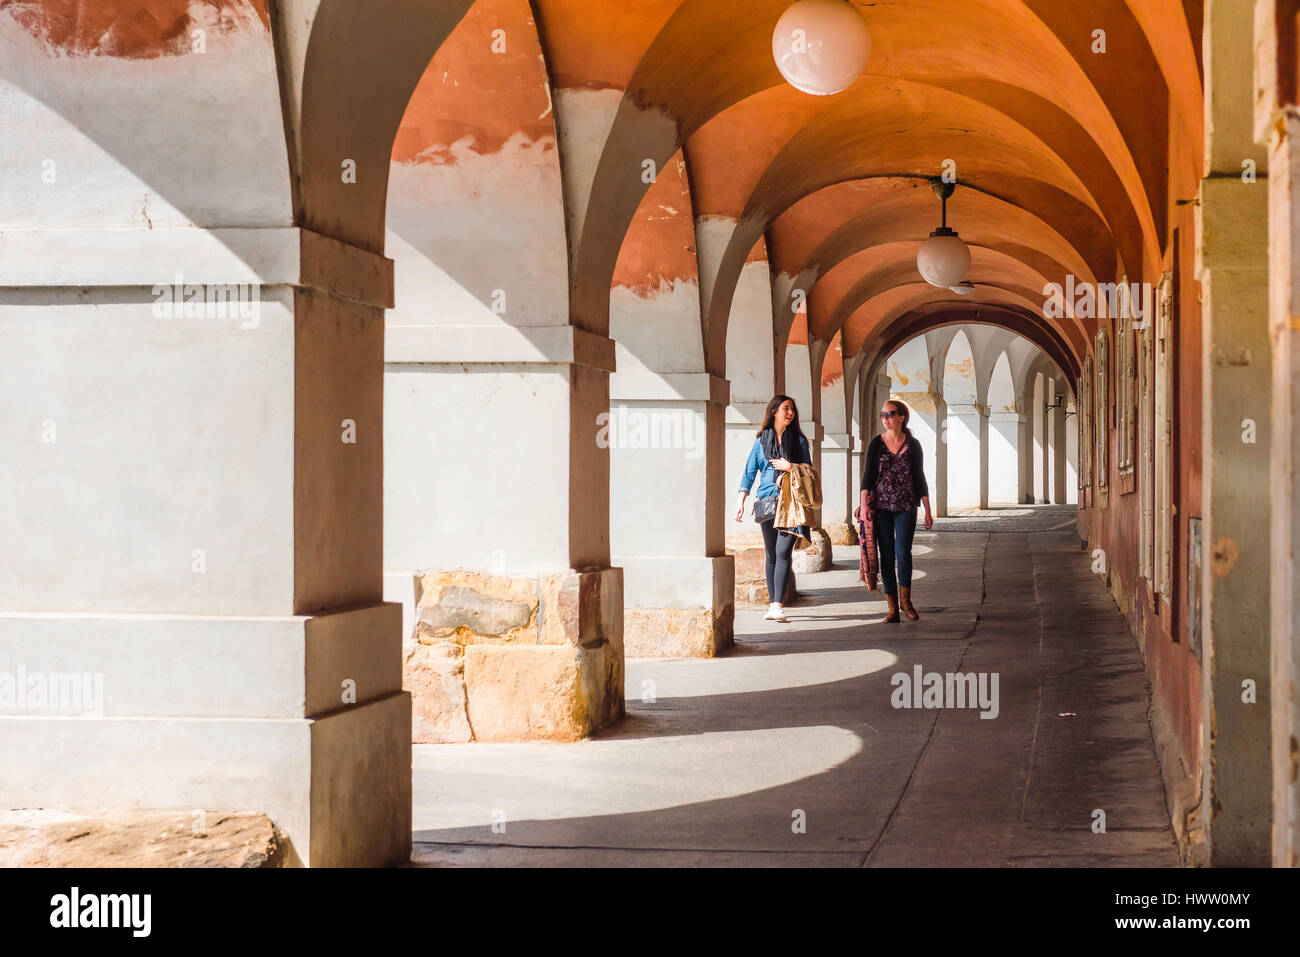 Prague old town arcade, two young women walk through an arcade in the historic Hradcany district of Prague, Czech - Stock Image